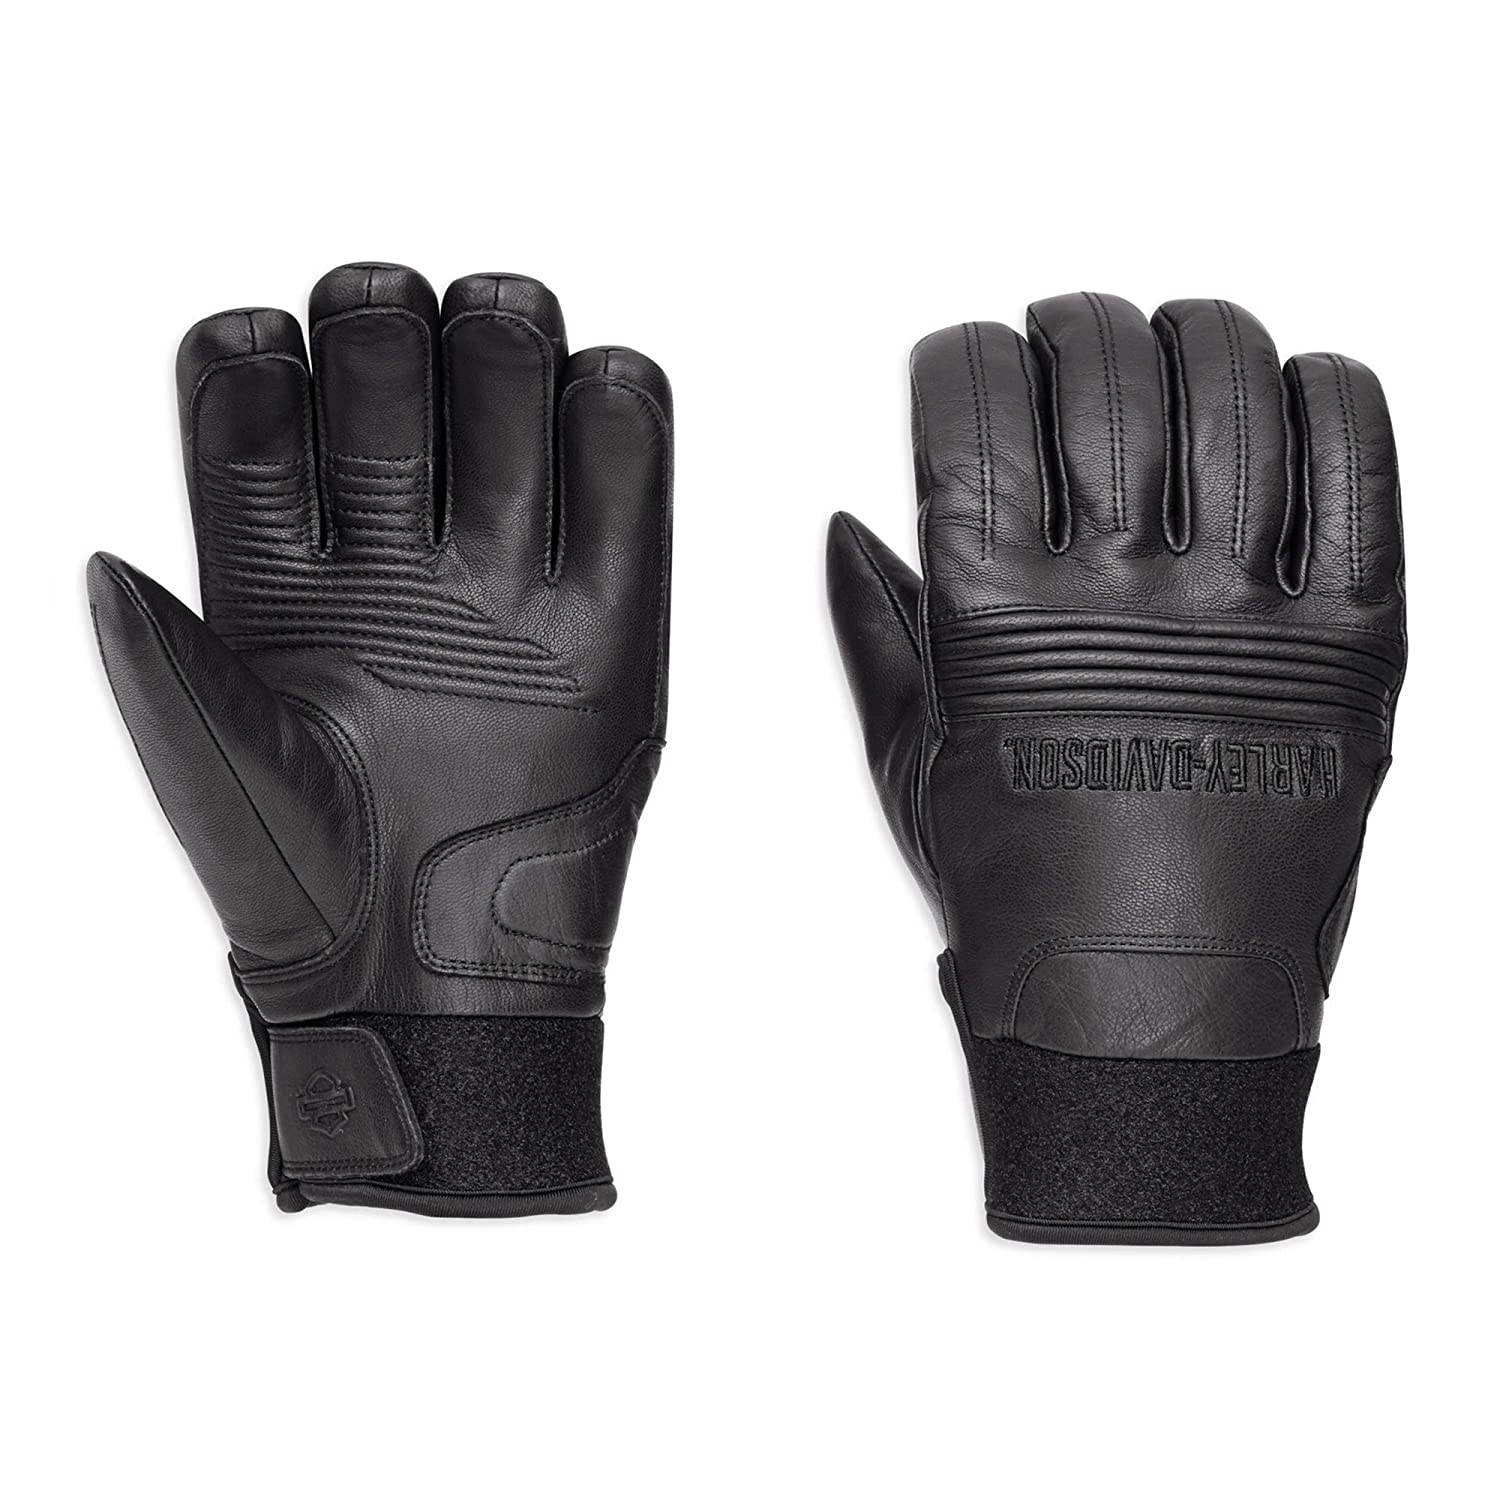 Harley-Davidson Cyrus Insulated Waterproof Gloves